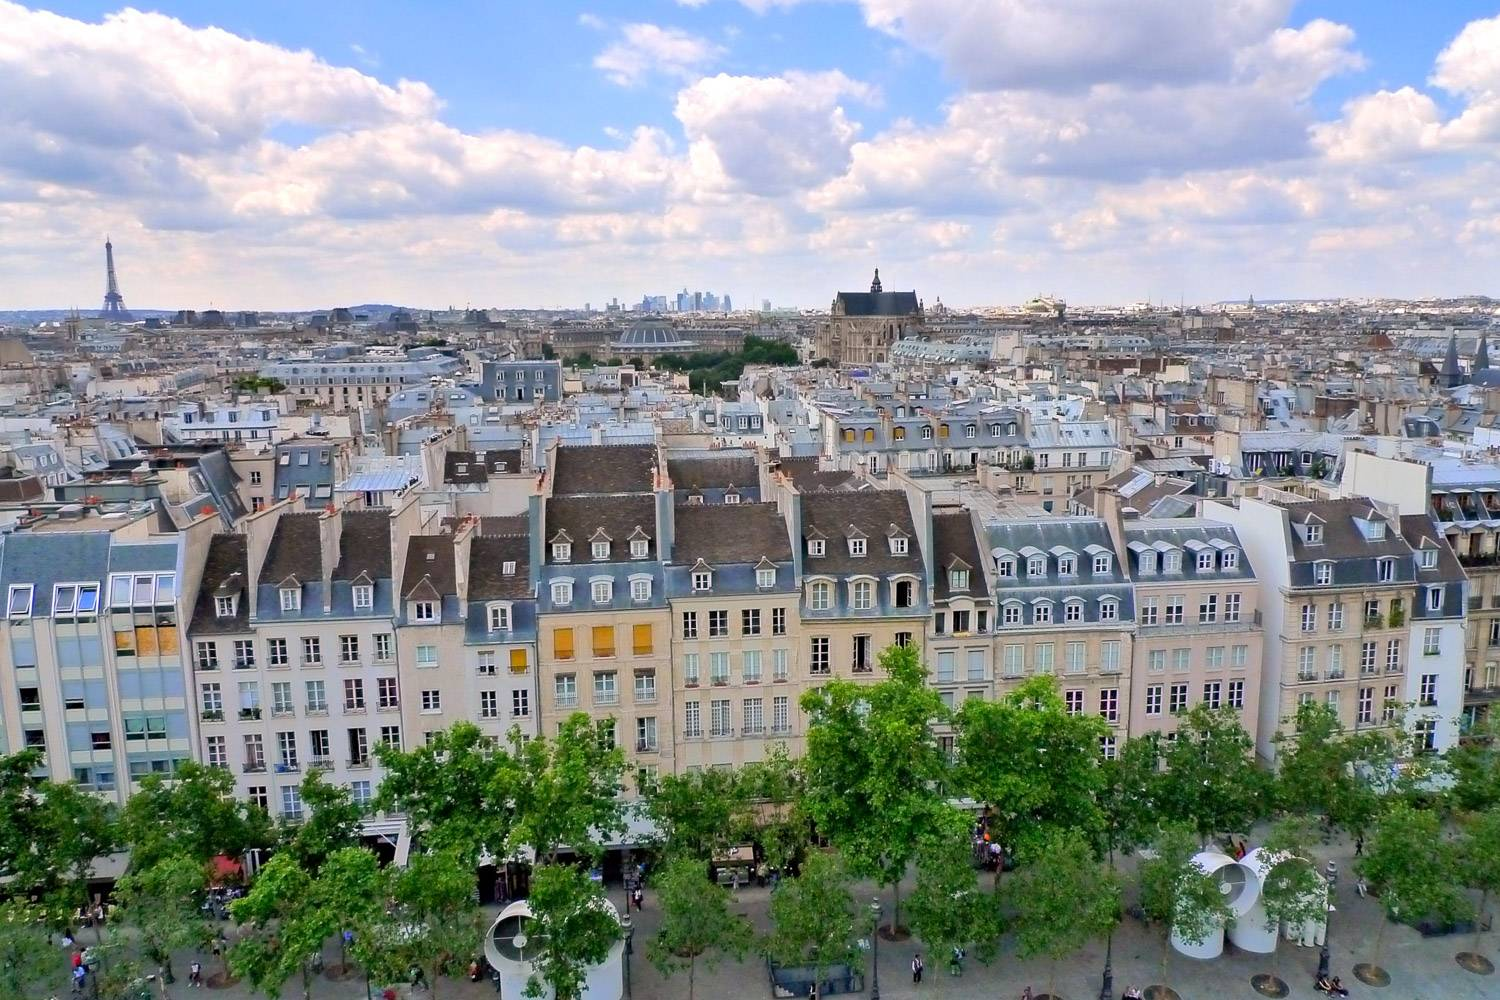 Image of Paris skyline over rooftops on a sunny day.